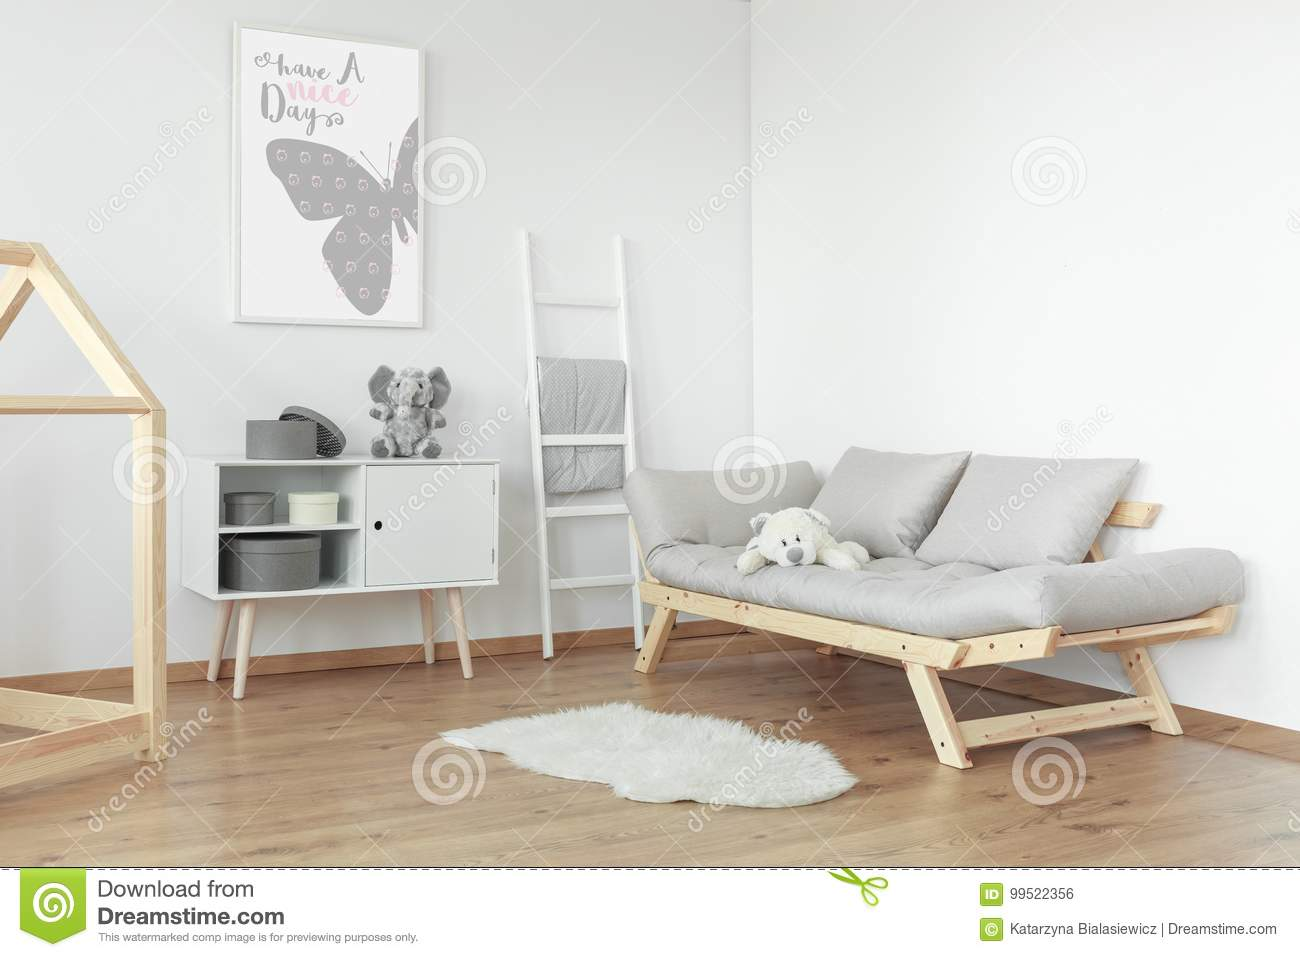 White teddy bear on grey sofa